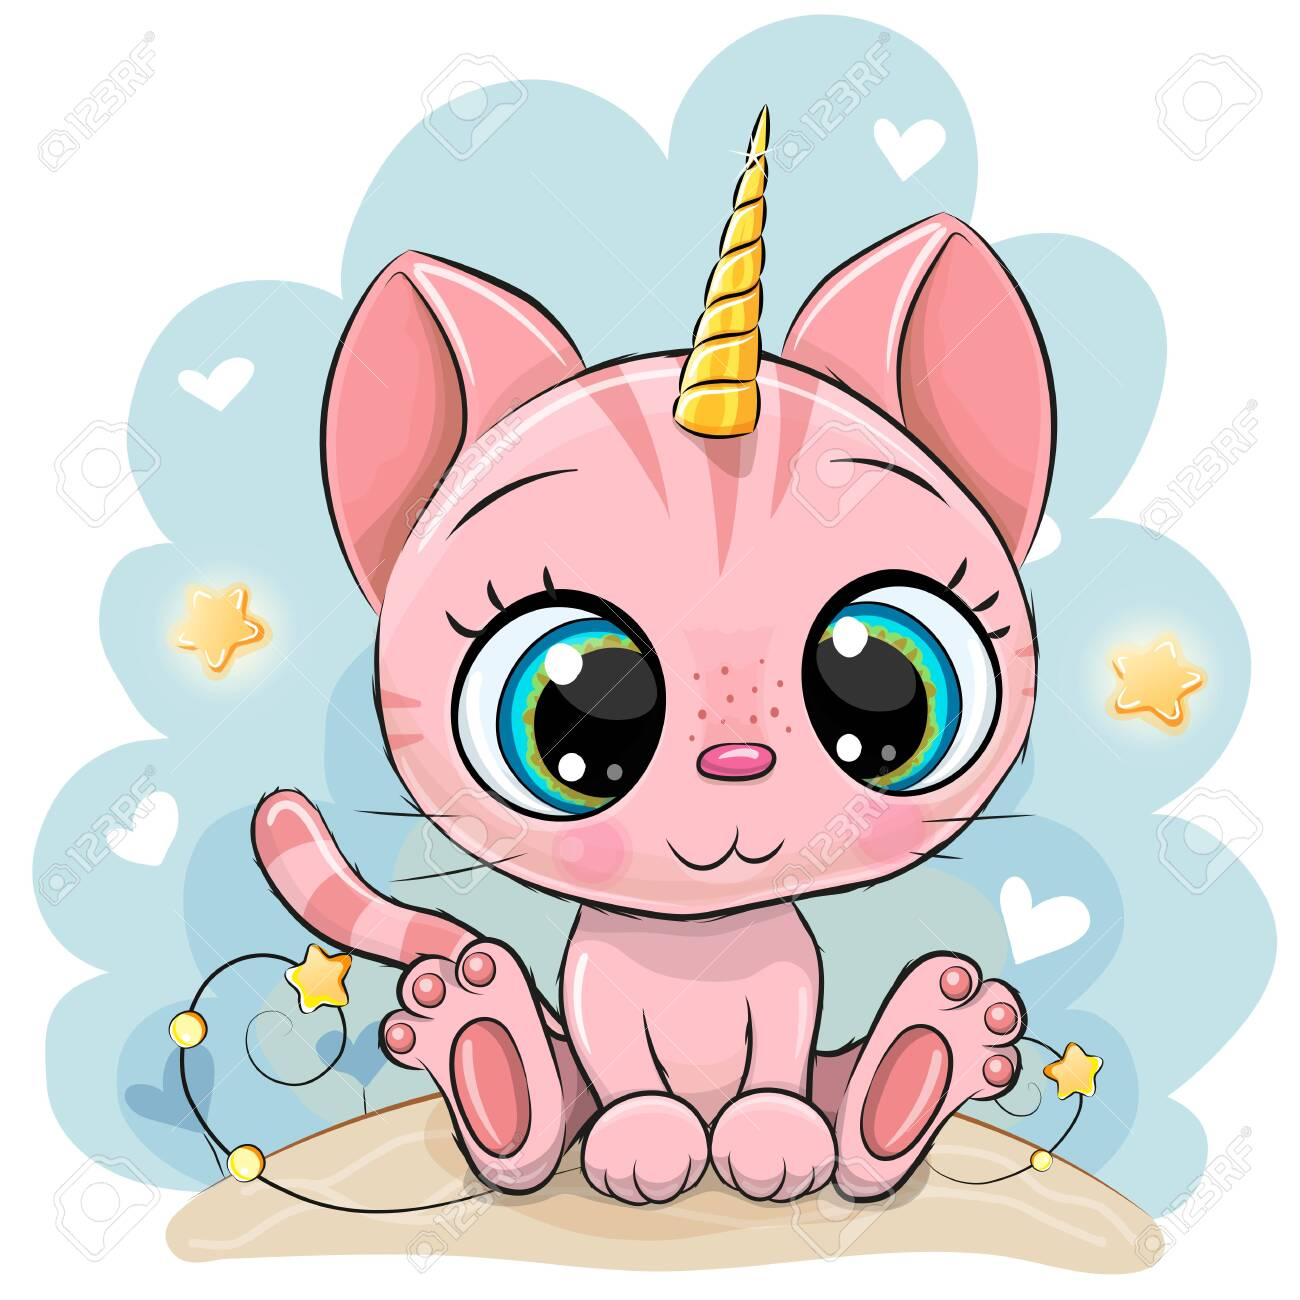 Cute Cartoon pink Kitten with the horn of a unicorn - 150177082